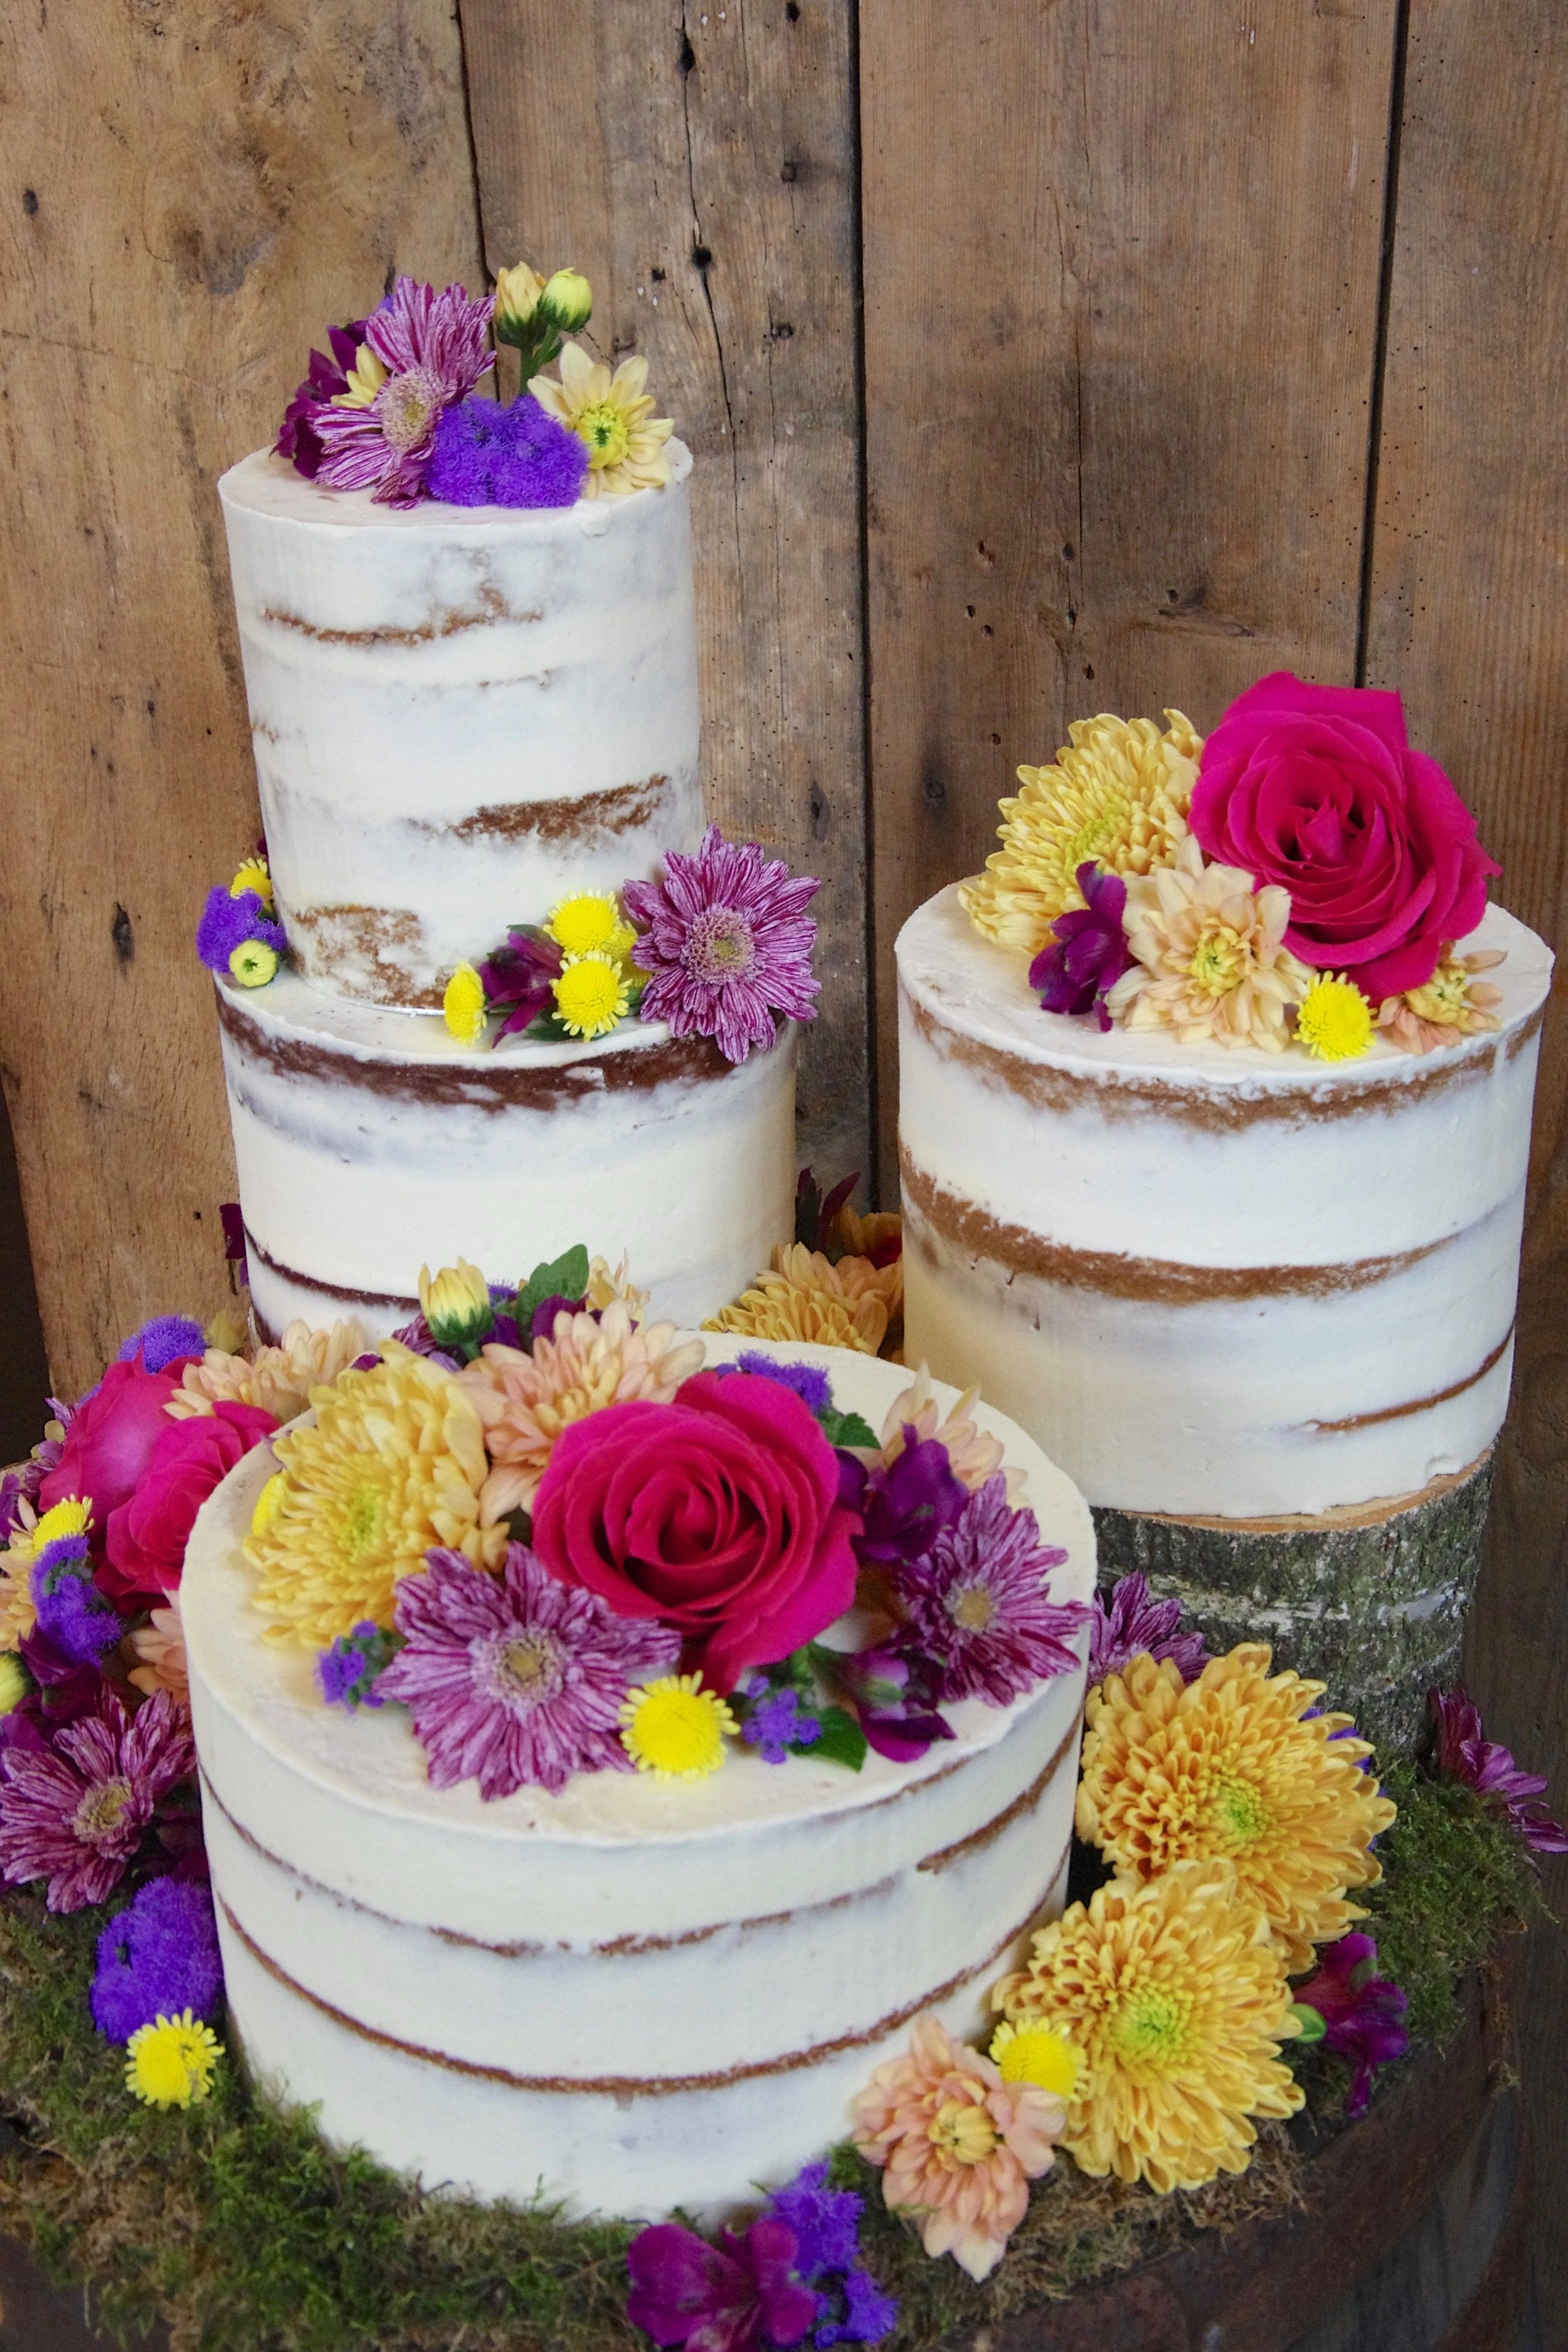 Wedding cake by Belle's Bakery. Flowers by The Flower Mill